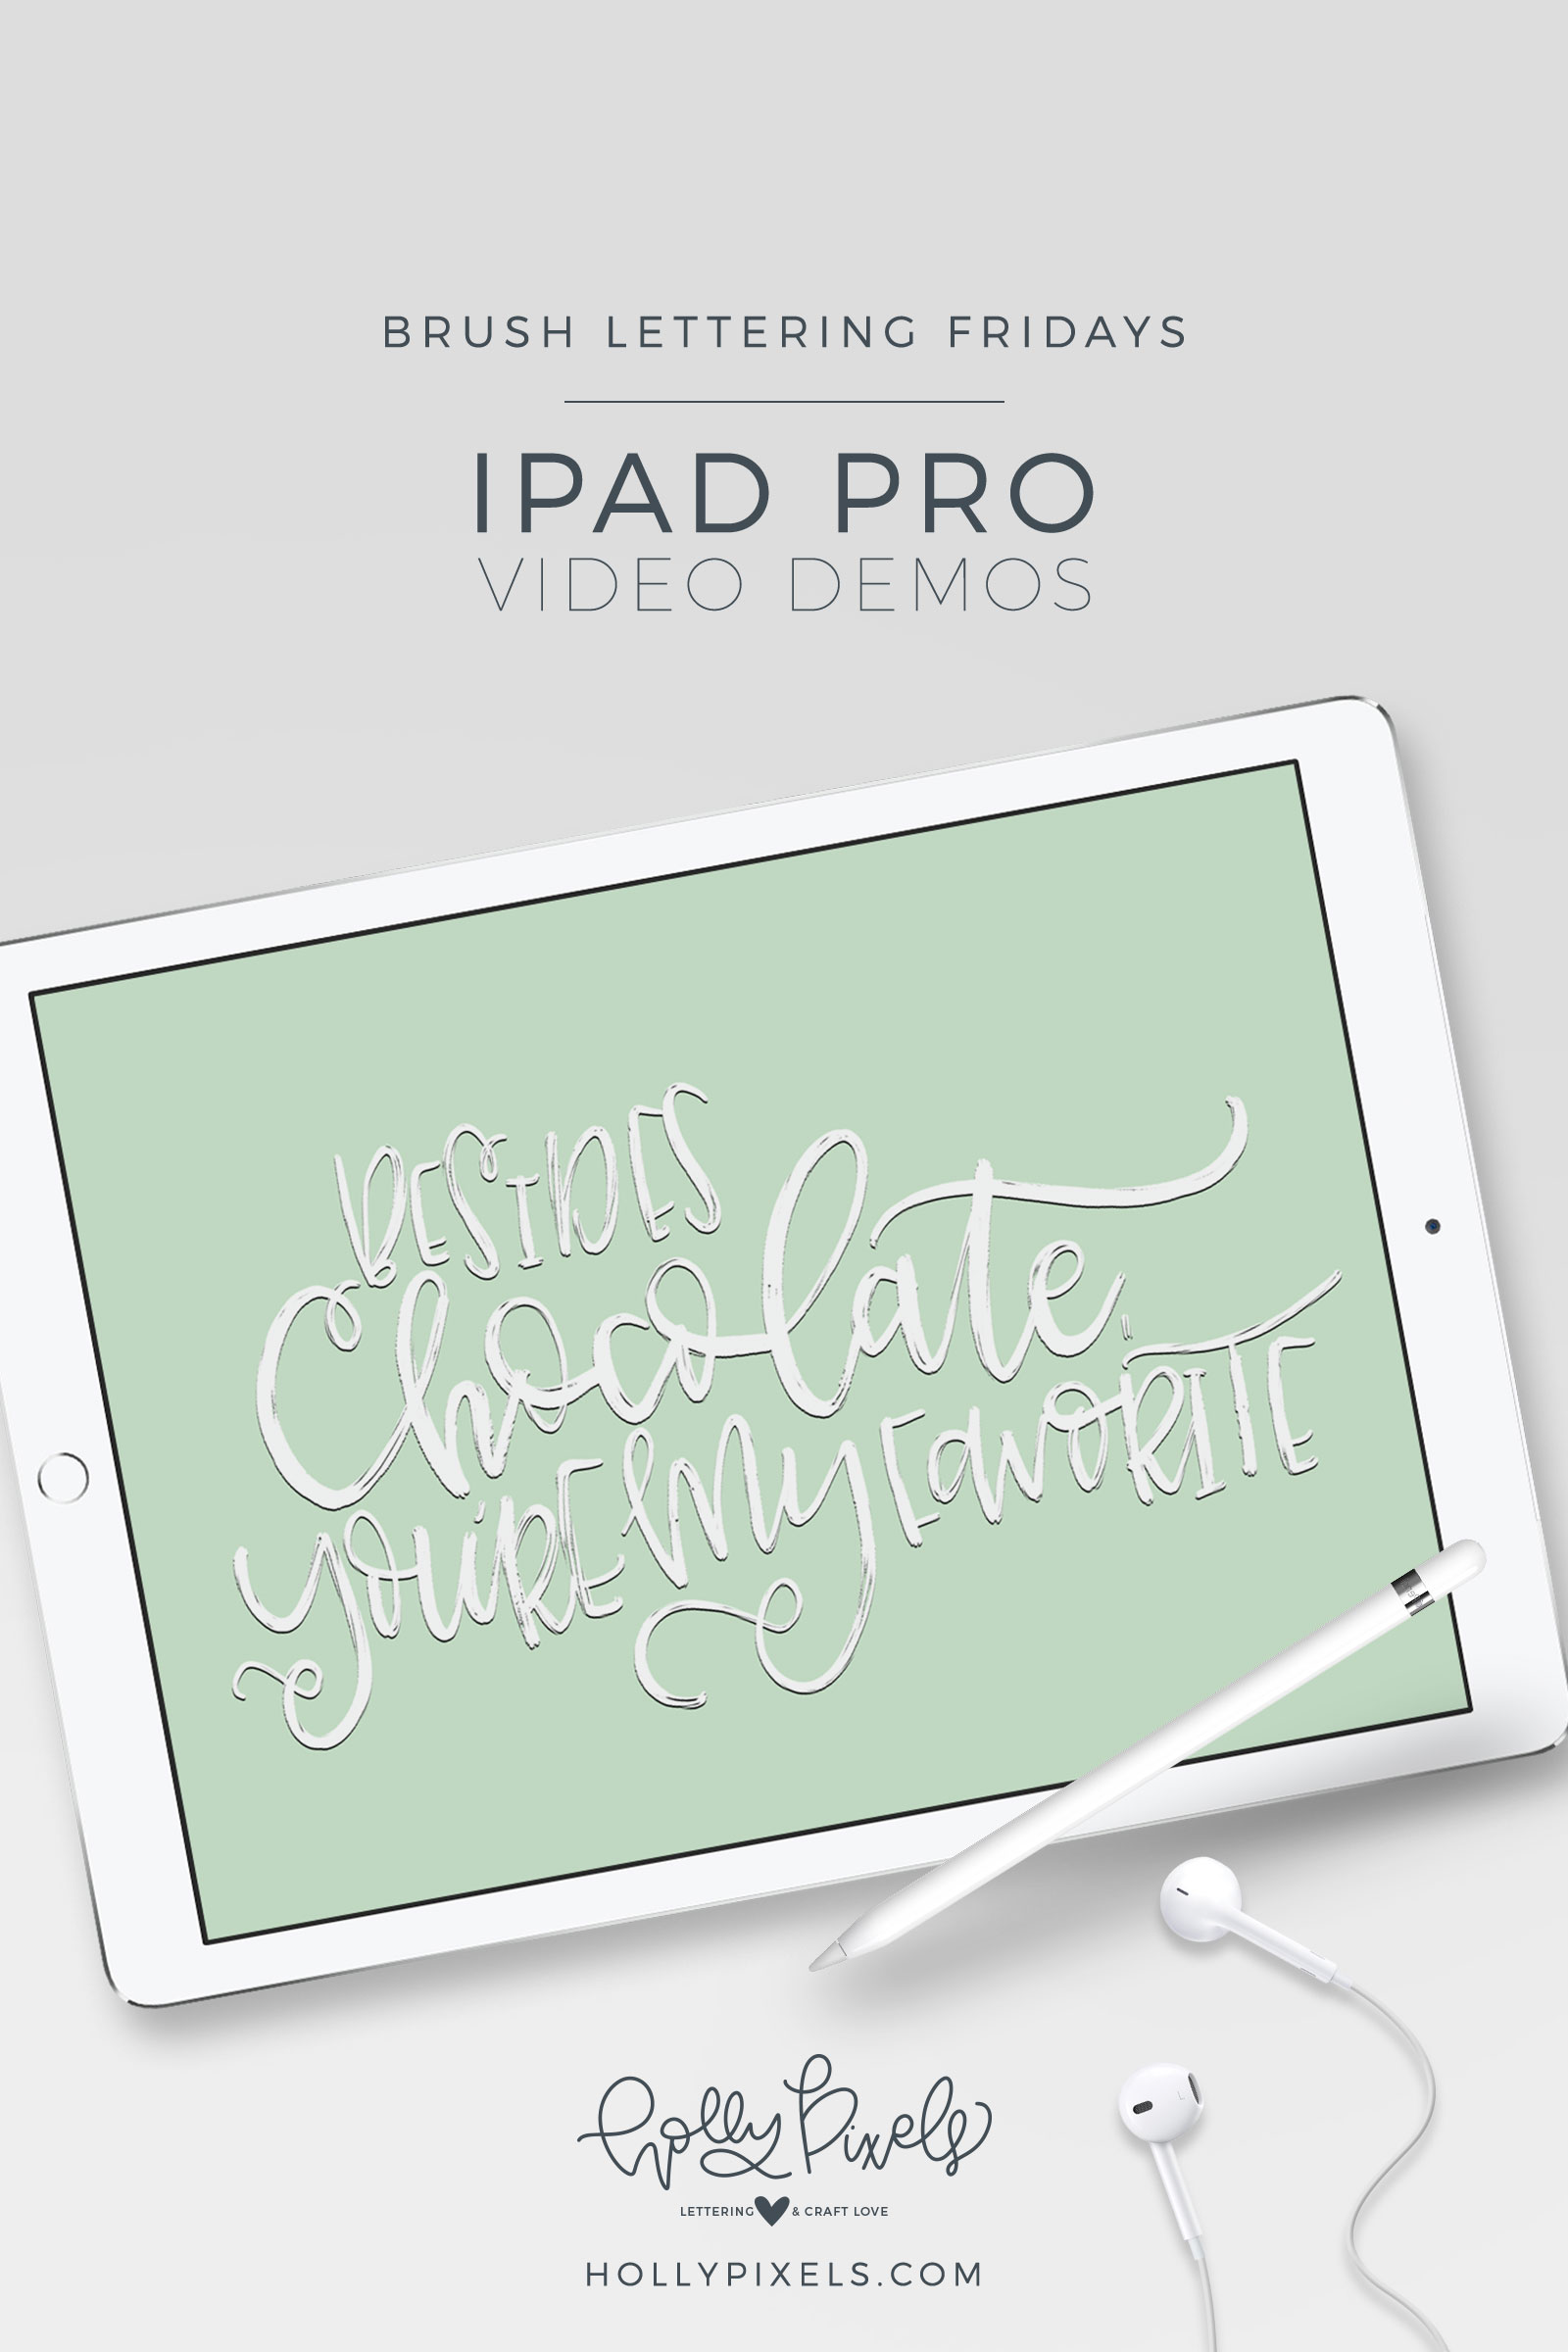 It's time for another brush lettering on iPad Pro Friday! With Valentine's Day right around the corner, I figured you could express your love with this quote. Watch my brush lettering video below and subscribe to my YouTube channel!